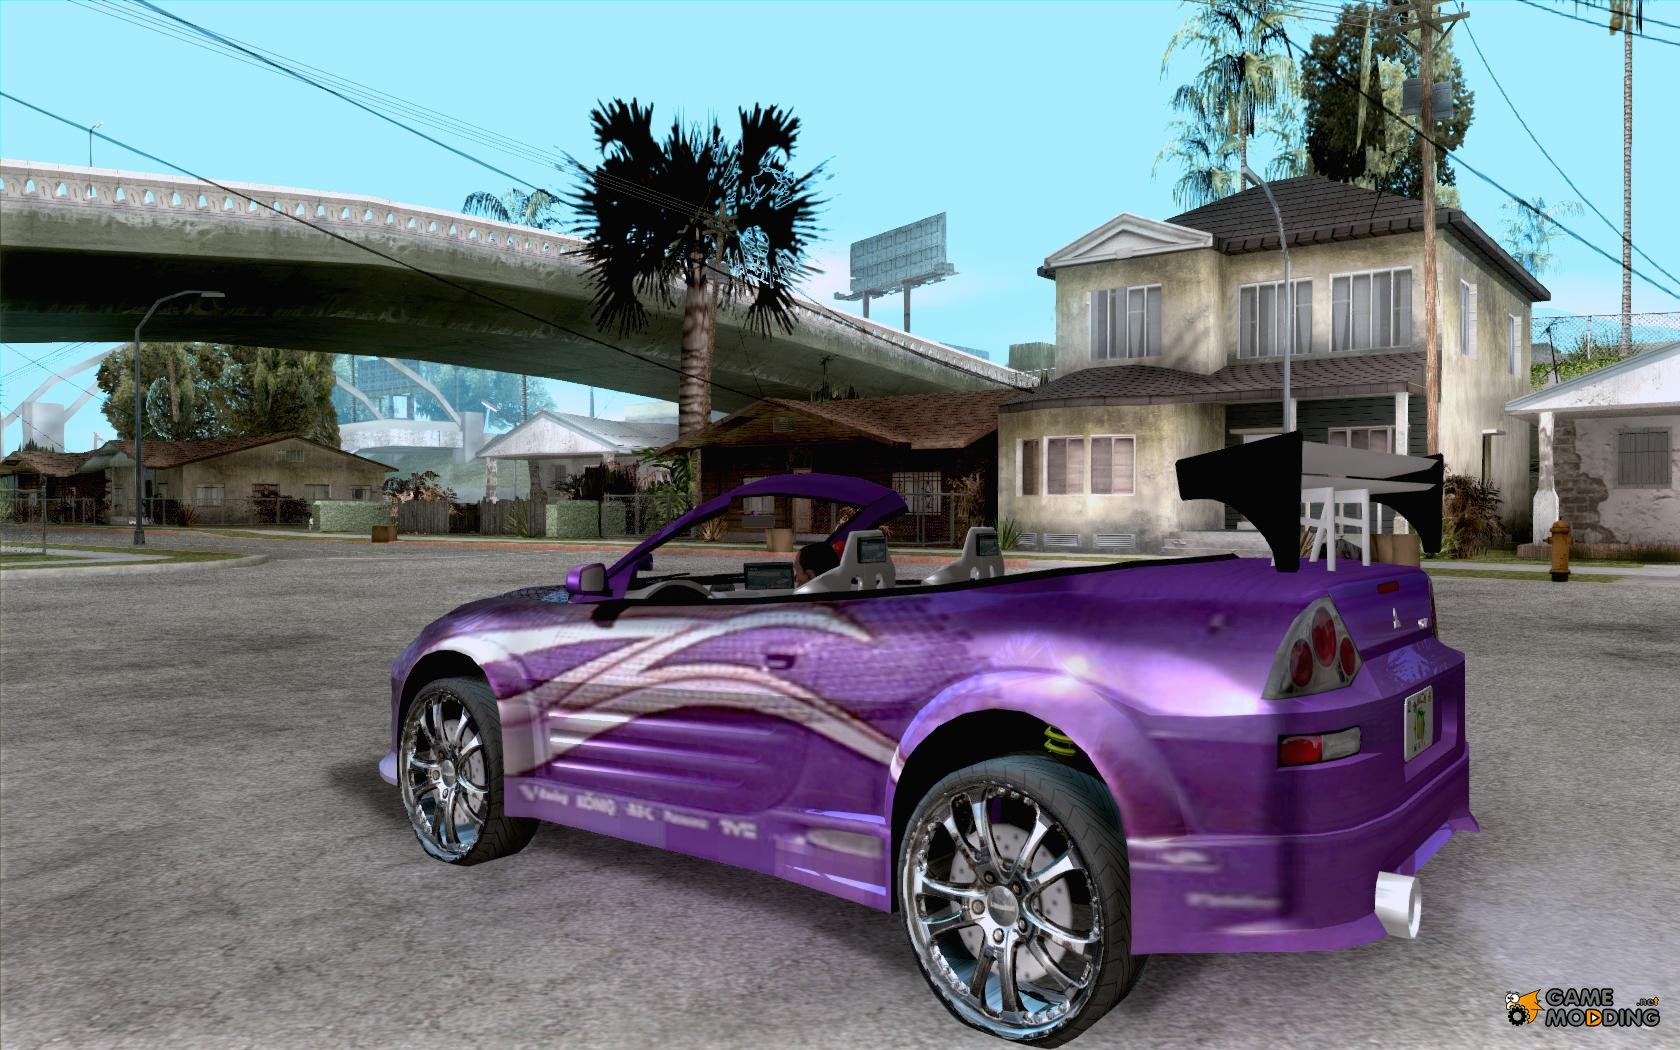 Mitsubishi Spyder 2Fast2Furious Cabriolet for GTA San Andreas